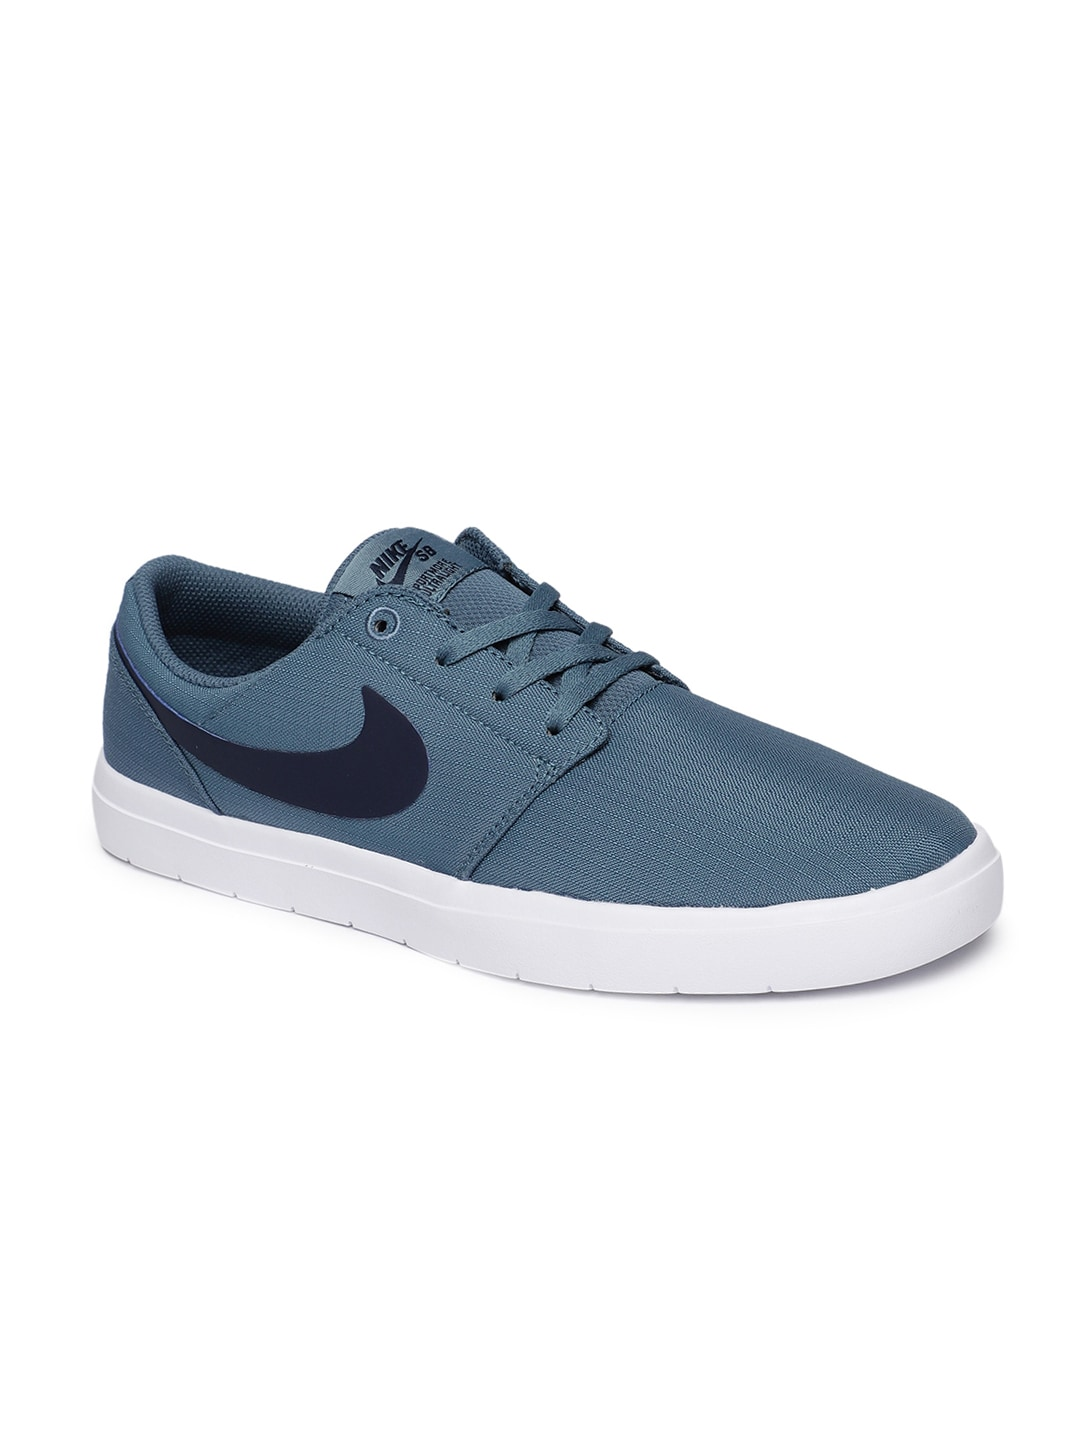 b936336d7dca Nike Sb Shoes - Buy Nike Sb Shoes online in India